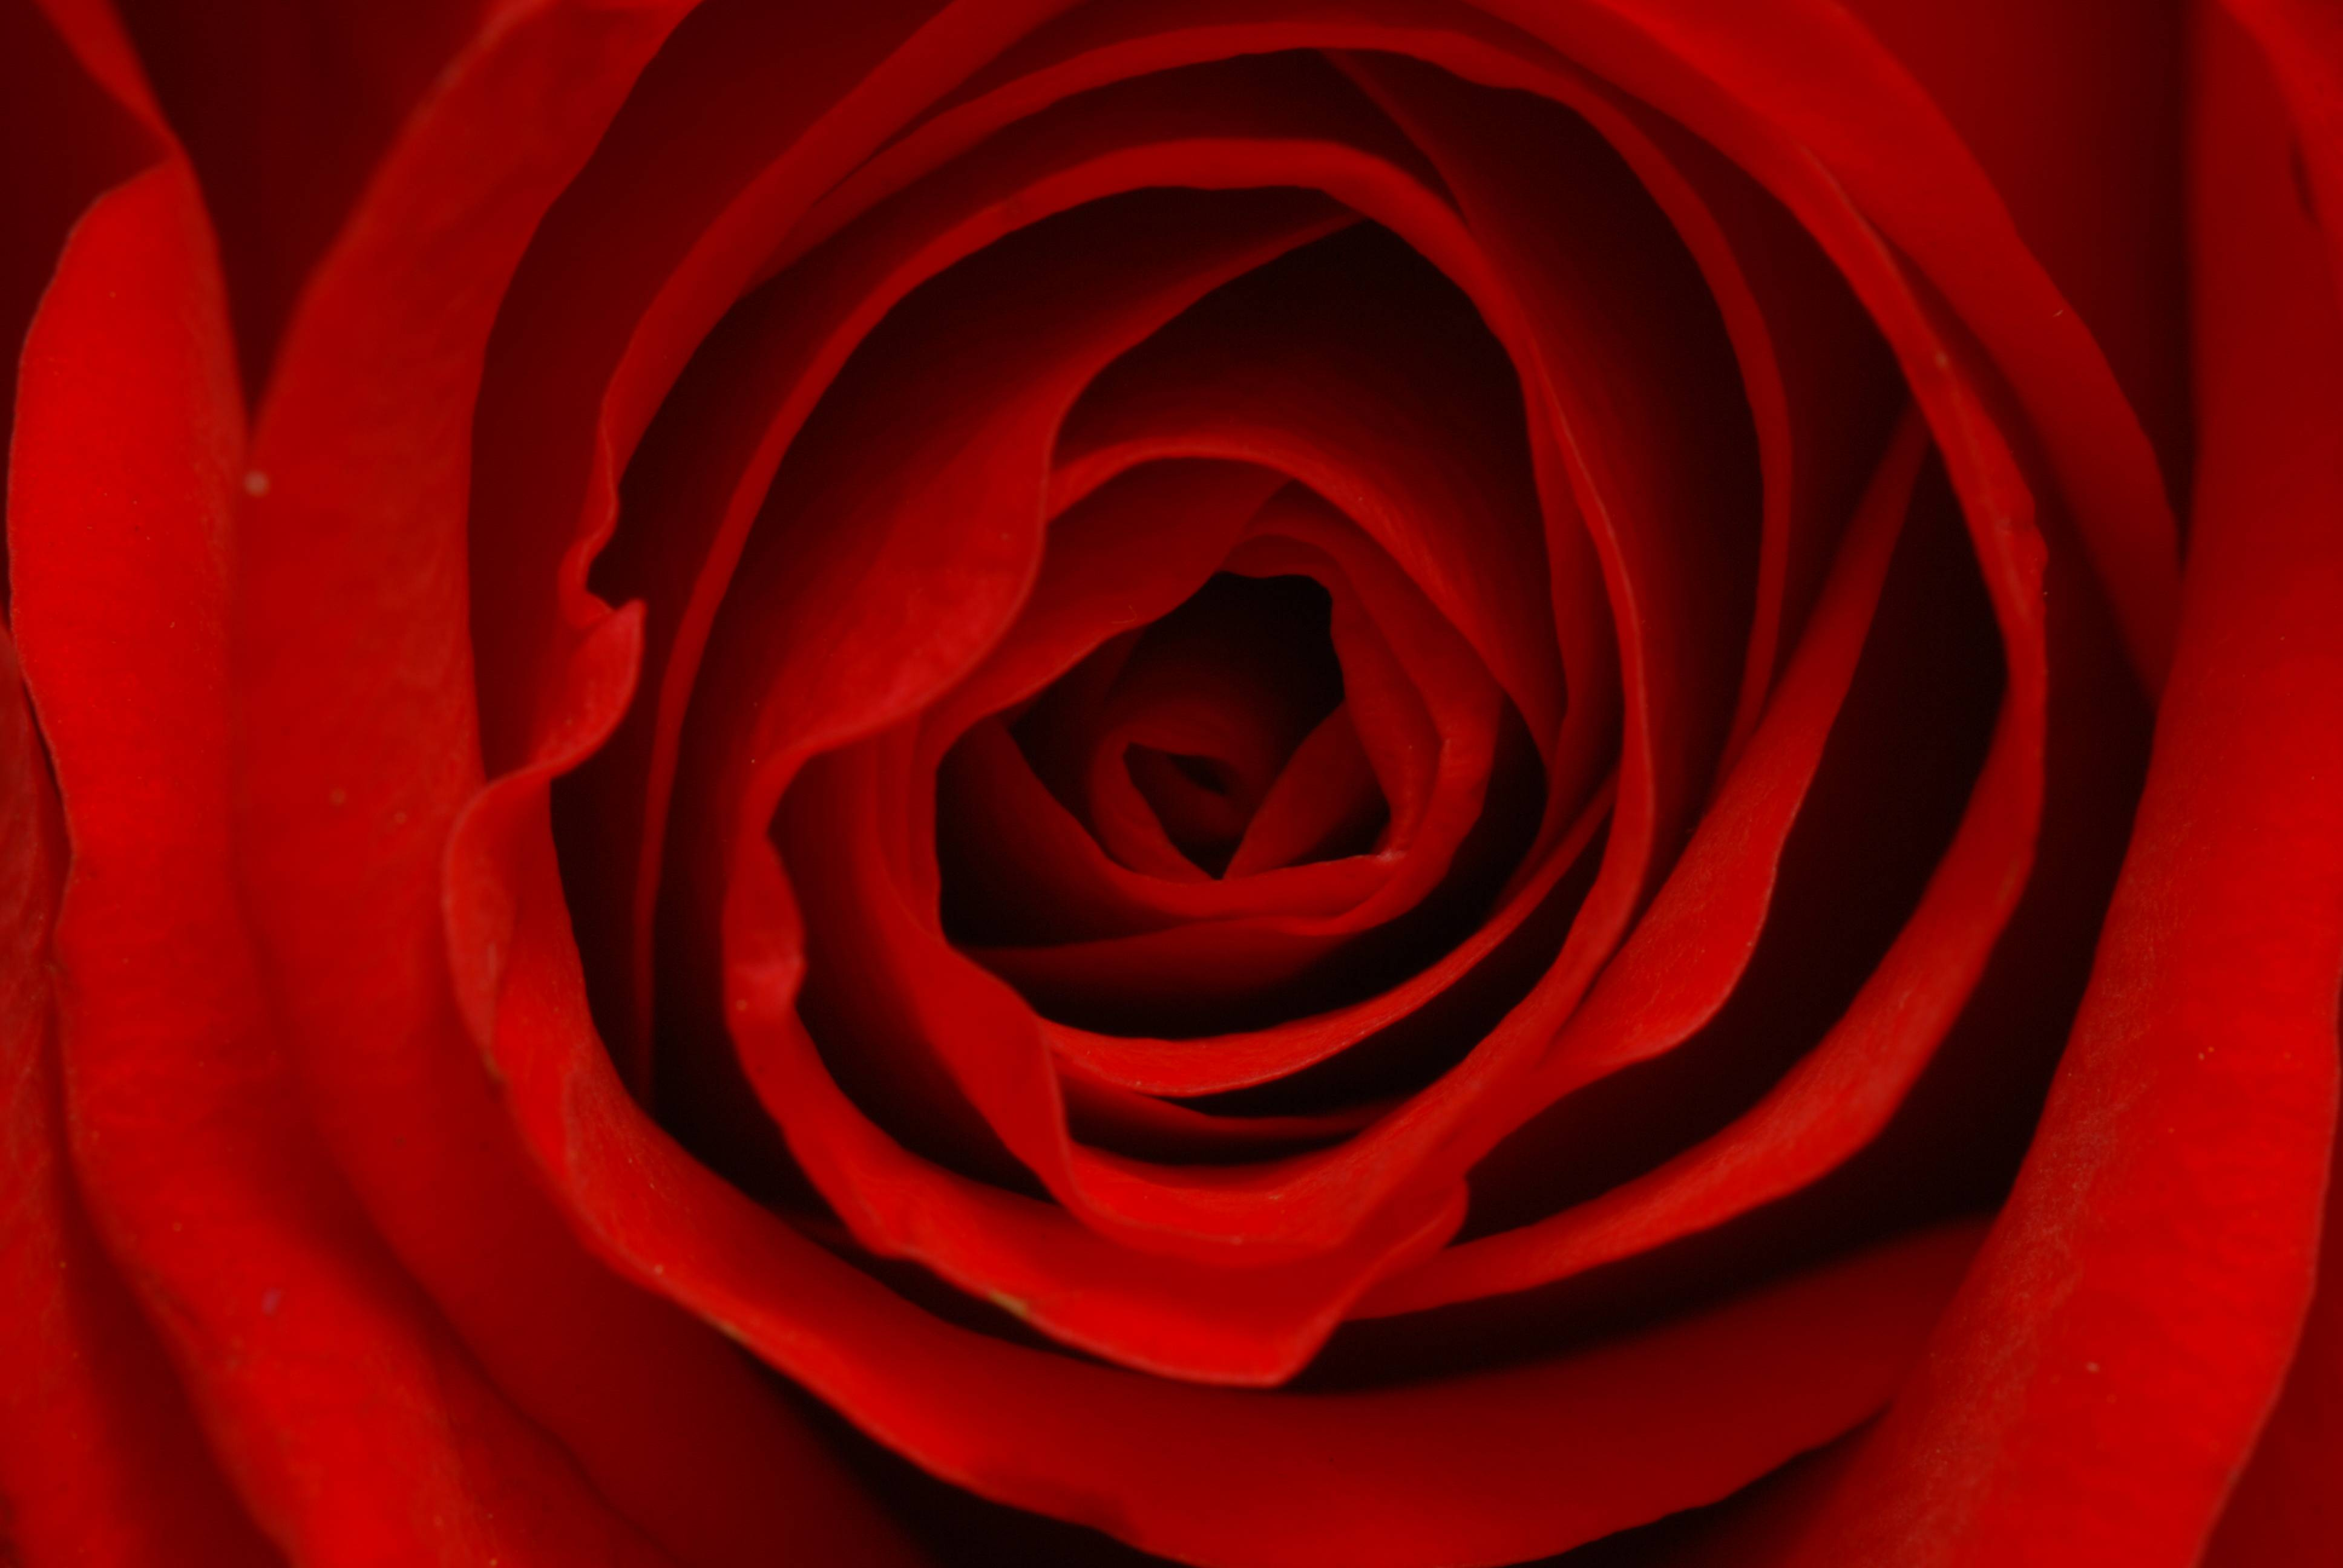 Flower Rose Wallpaper Flower Rose Wallpapers Flower Rose Wallpaper ...